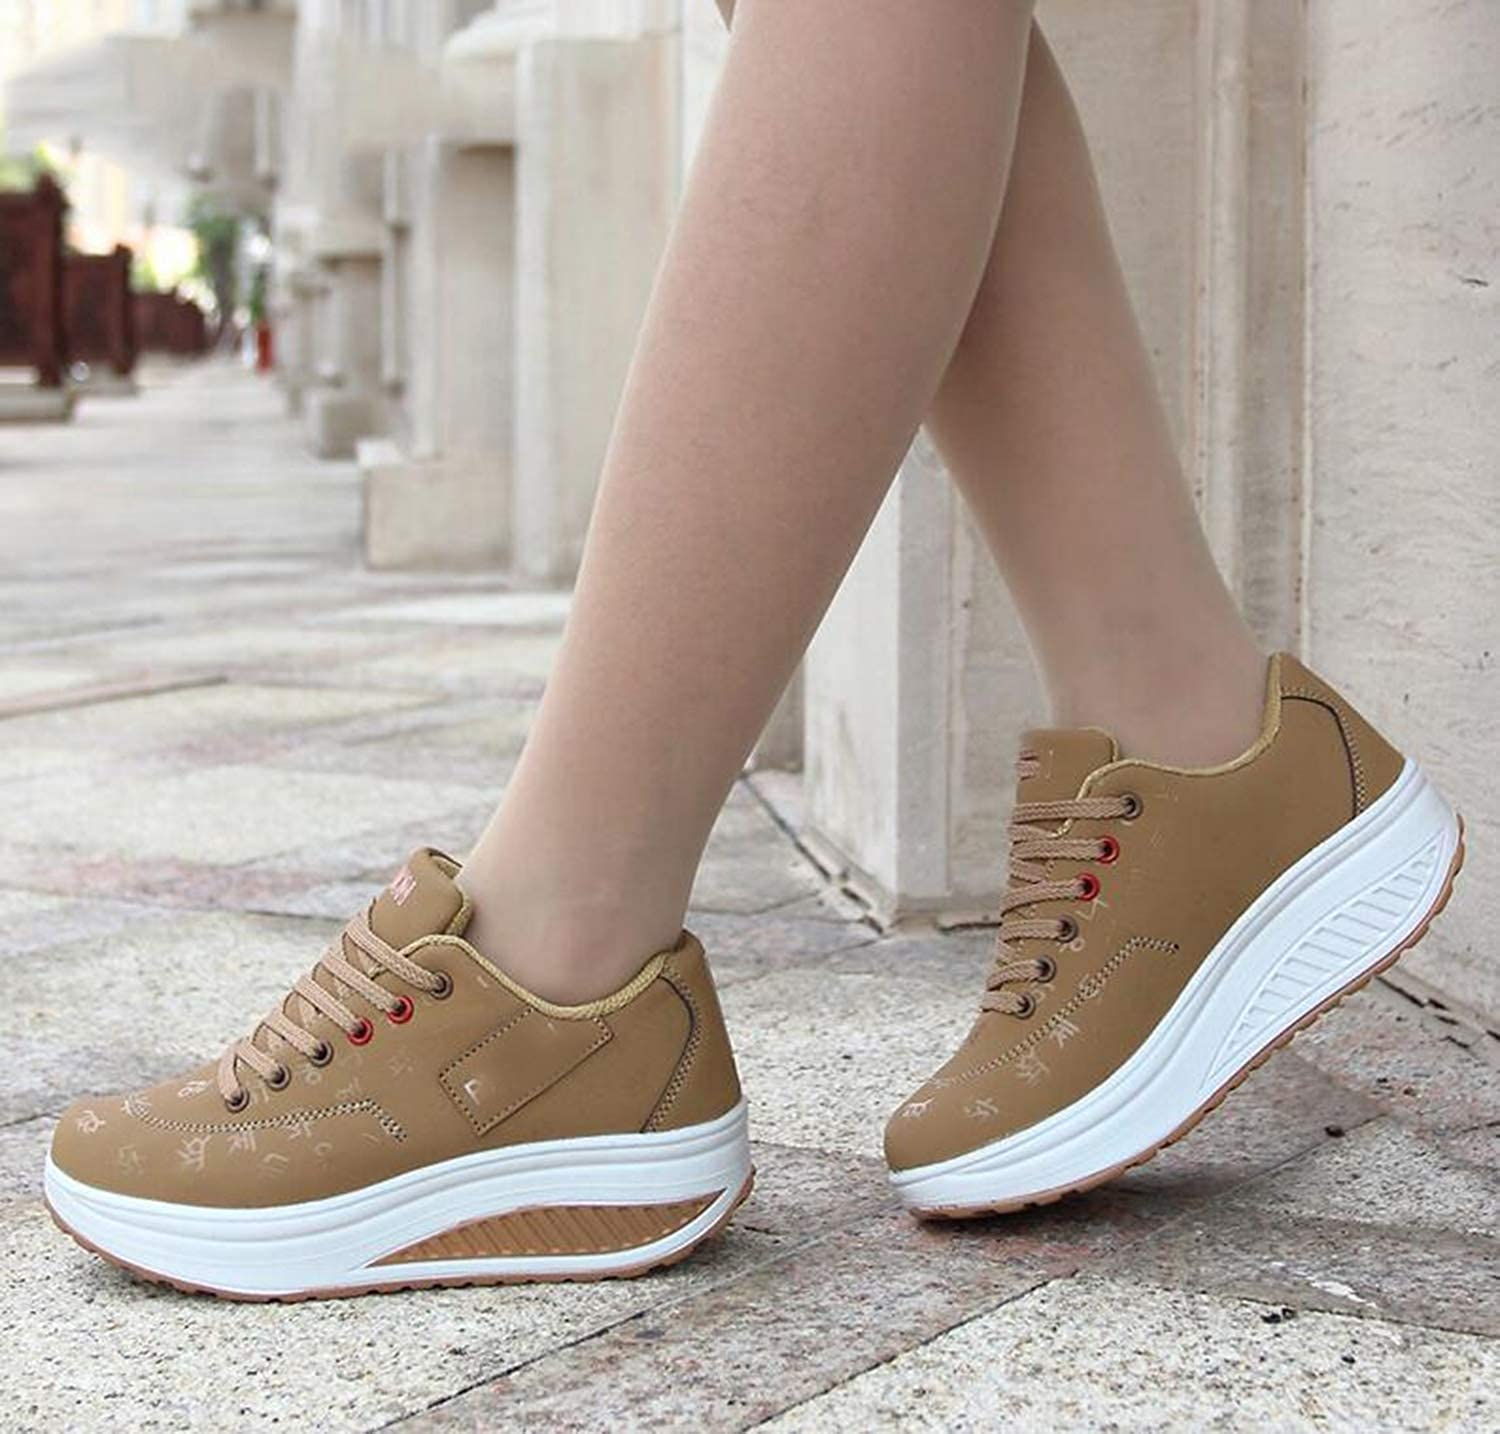 Amazon.com | Awmerny Boots Waterproof Wedges Platform Vulcanize Shoes Woman Pu Leather Women | Fashion Sneakers